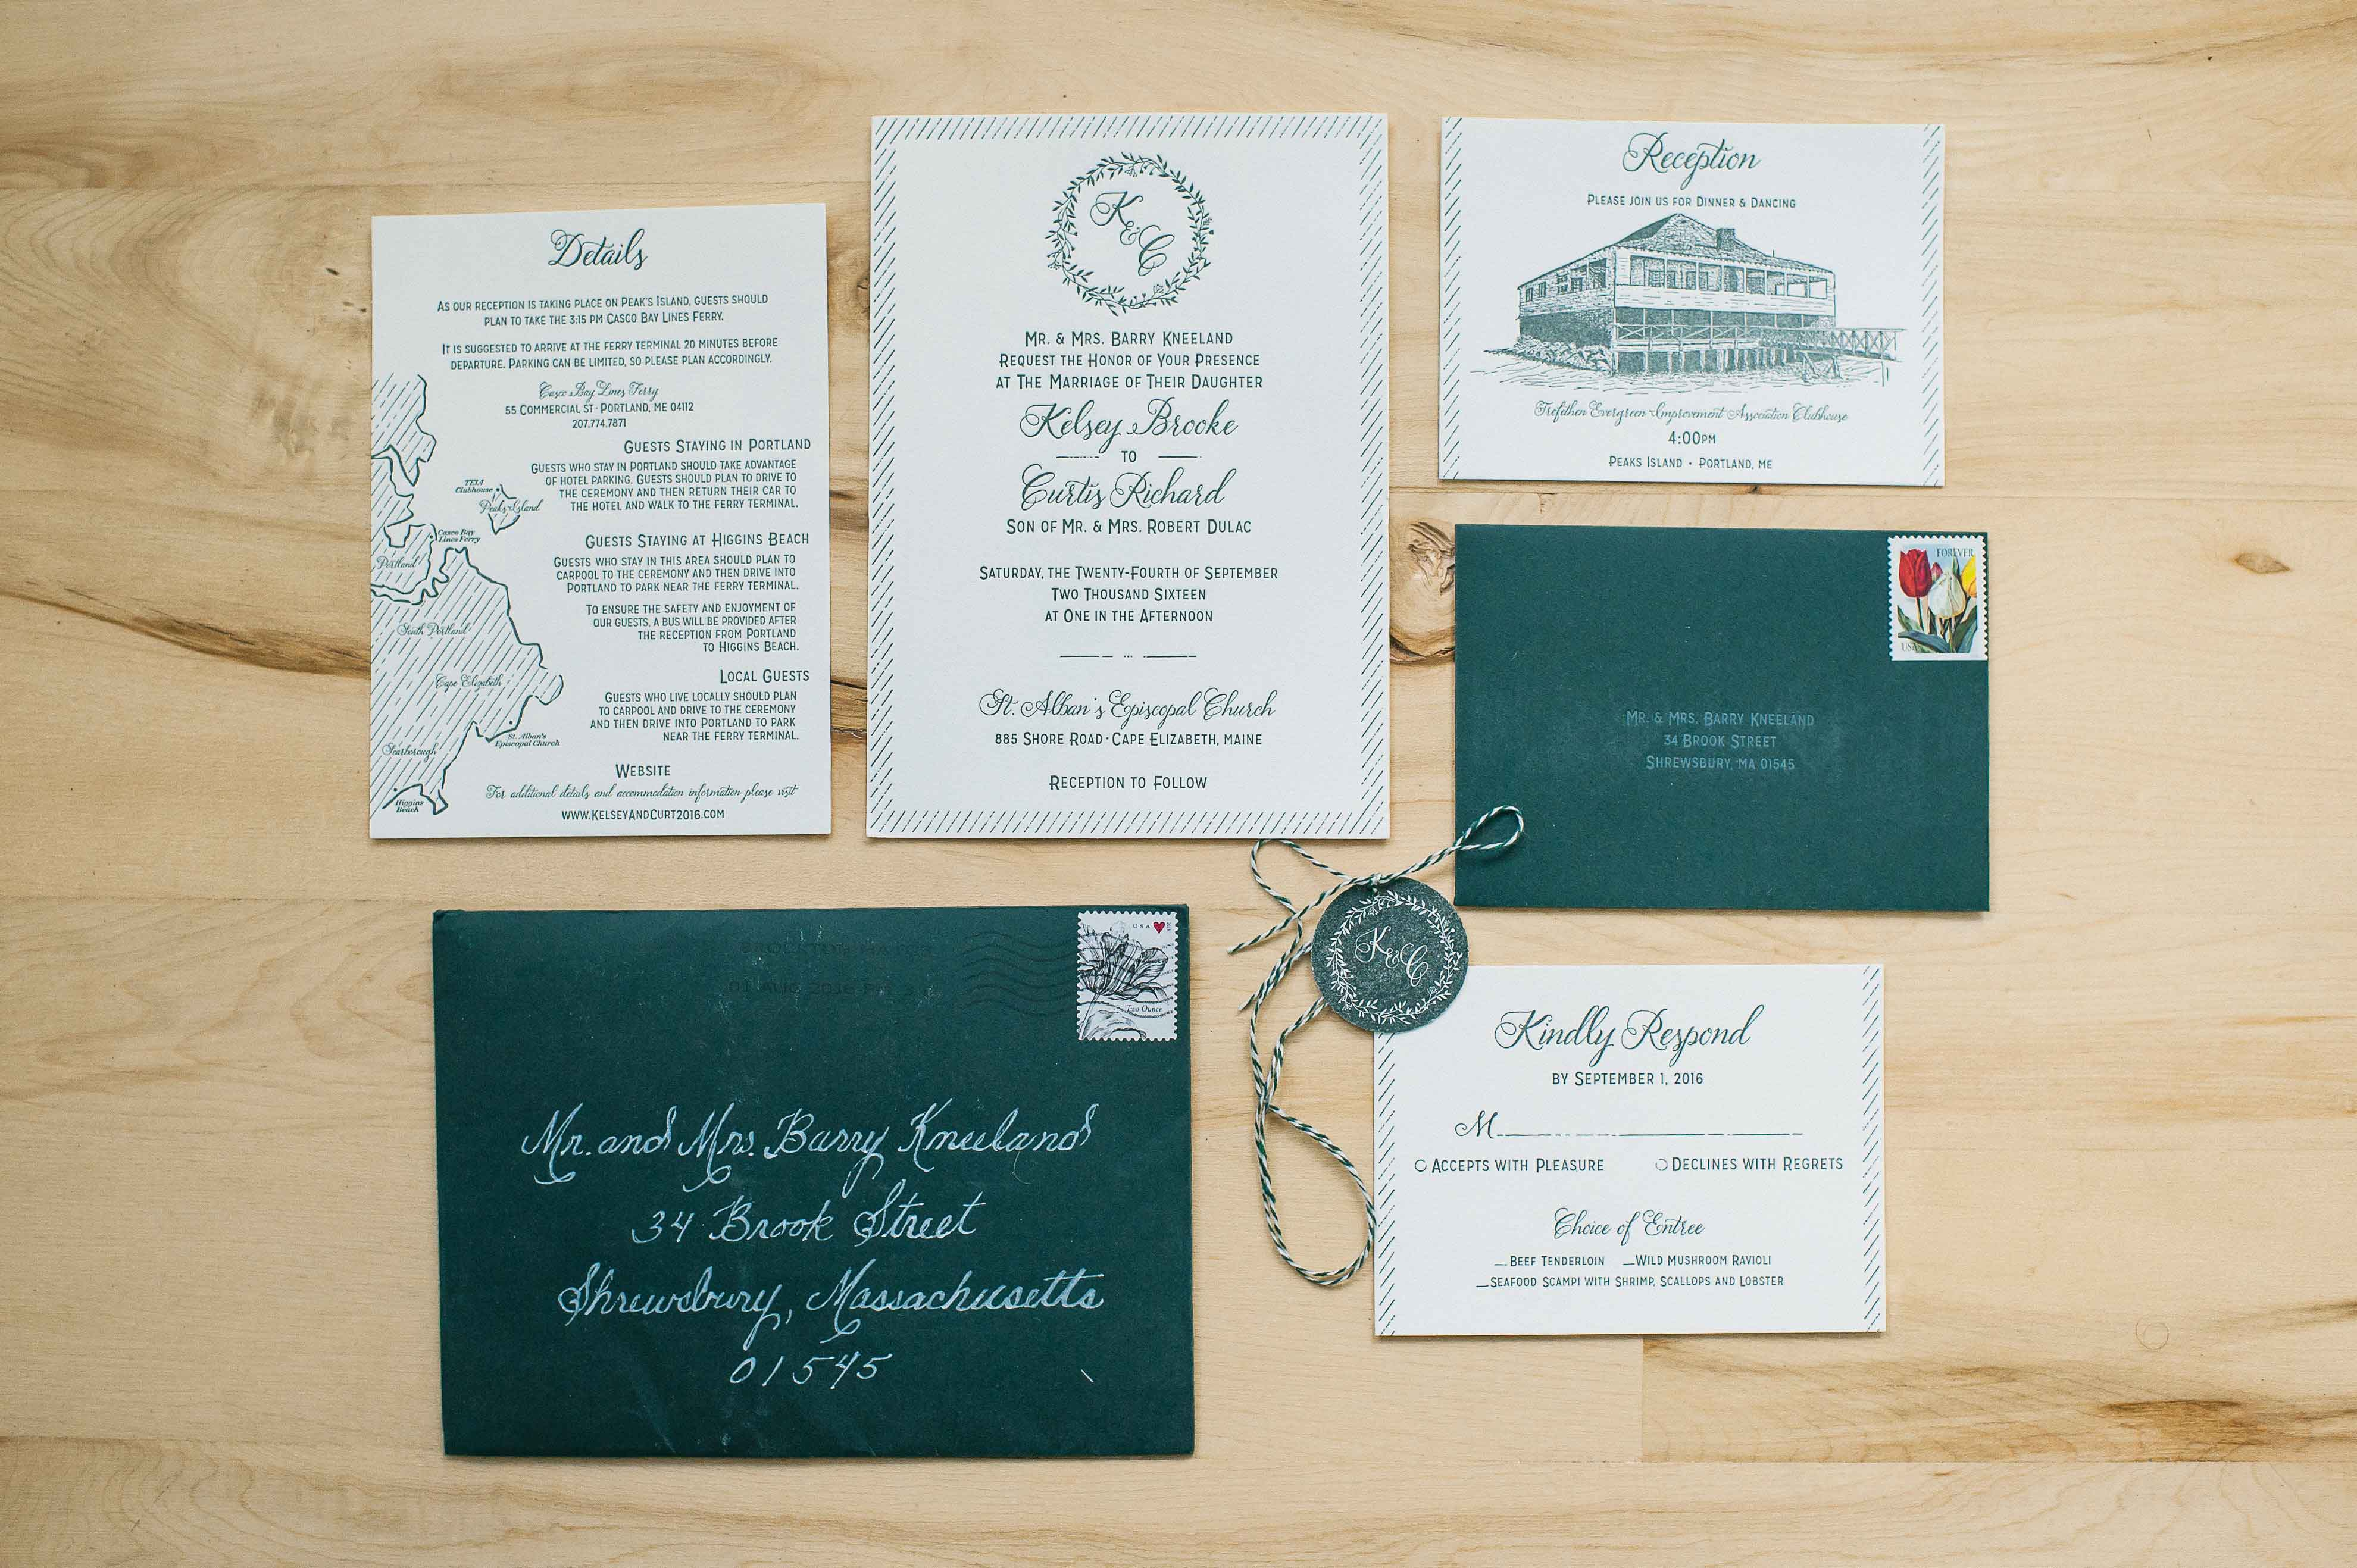 Wedding Color Palette Ideas: Dark Green & Emerald - Inside Weddings